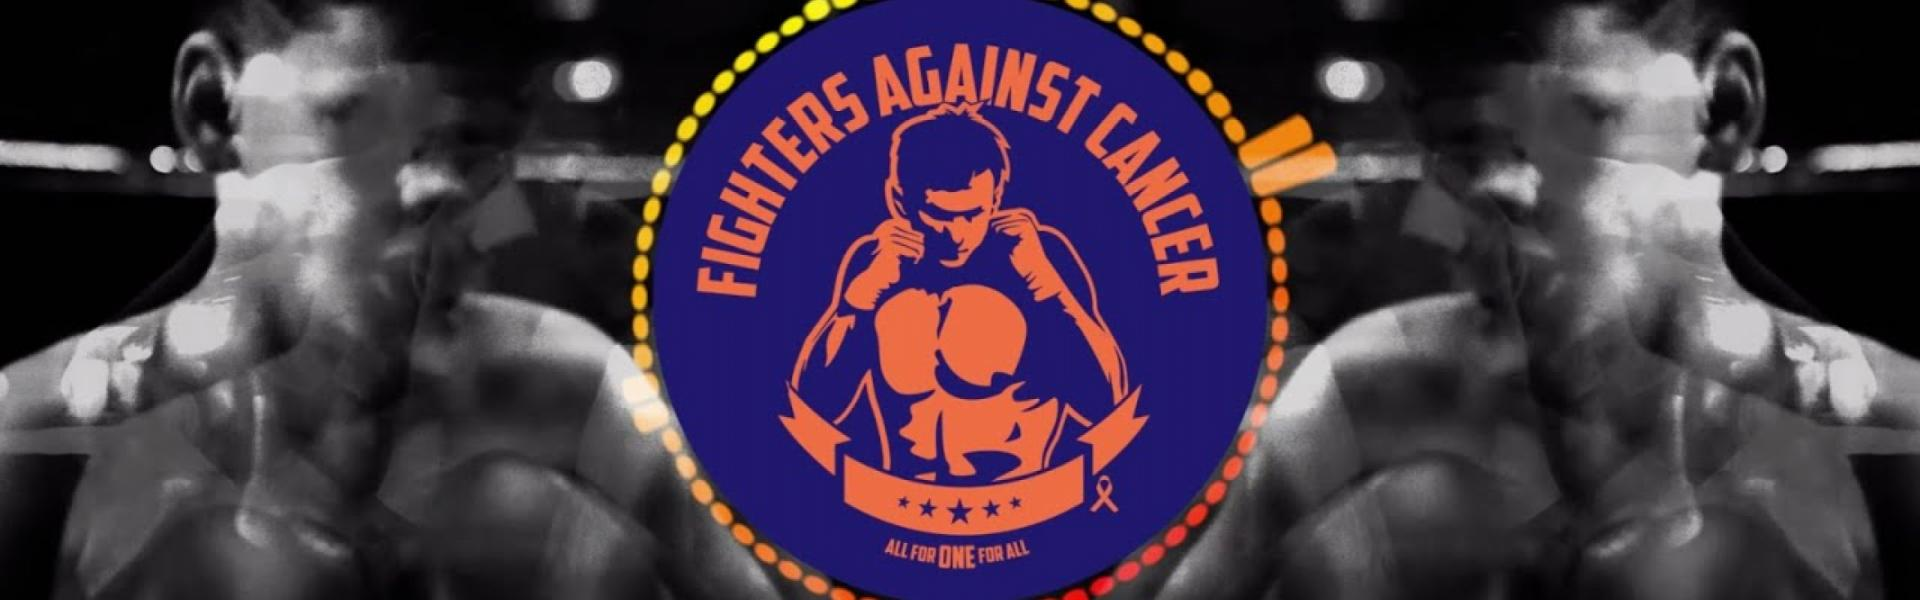 Embedded thumbnail for Fighters Against Cancer